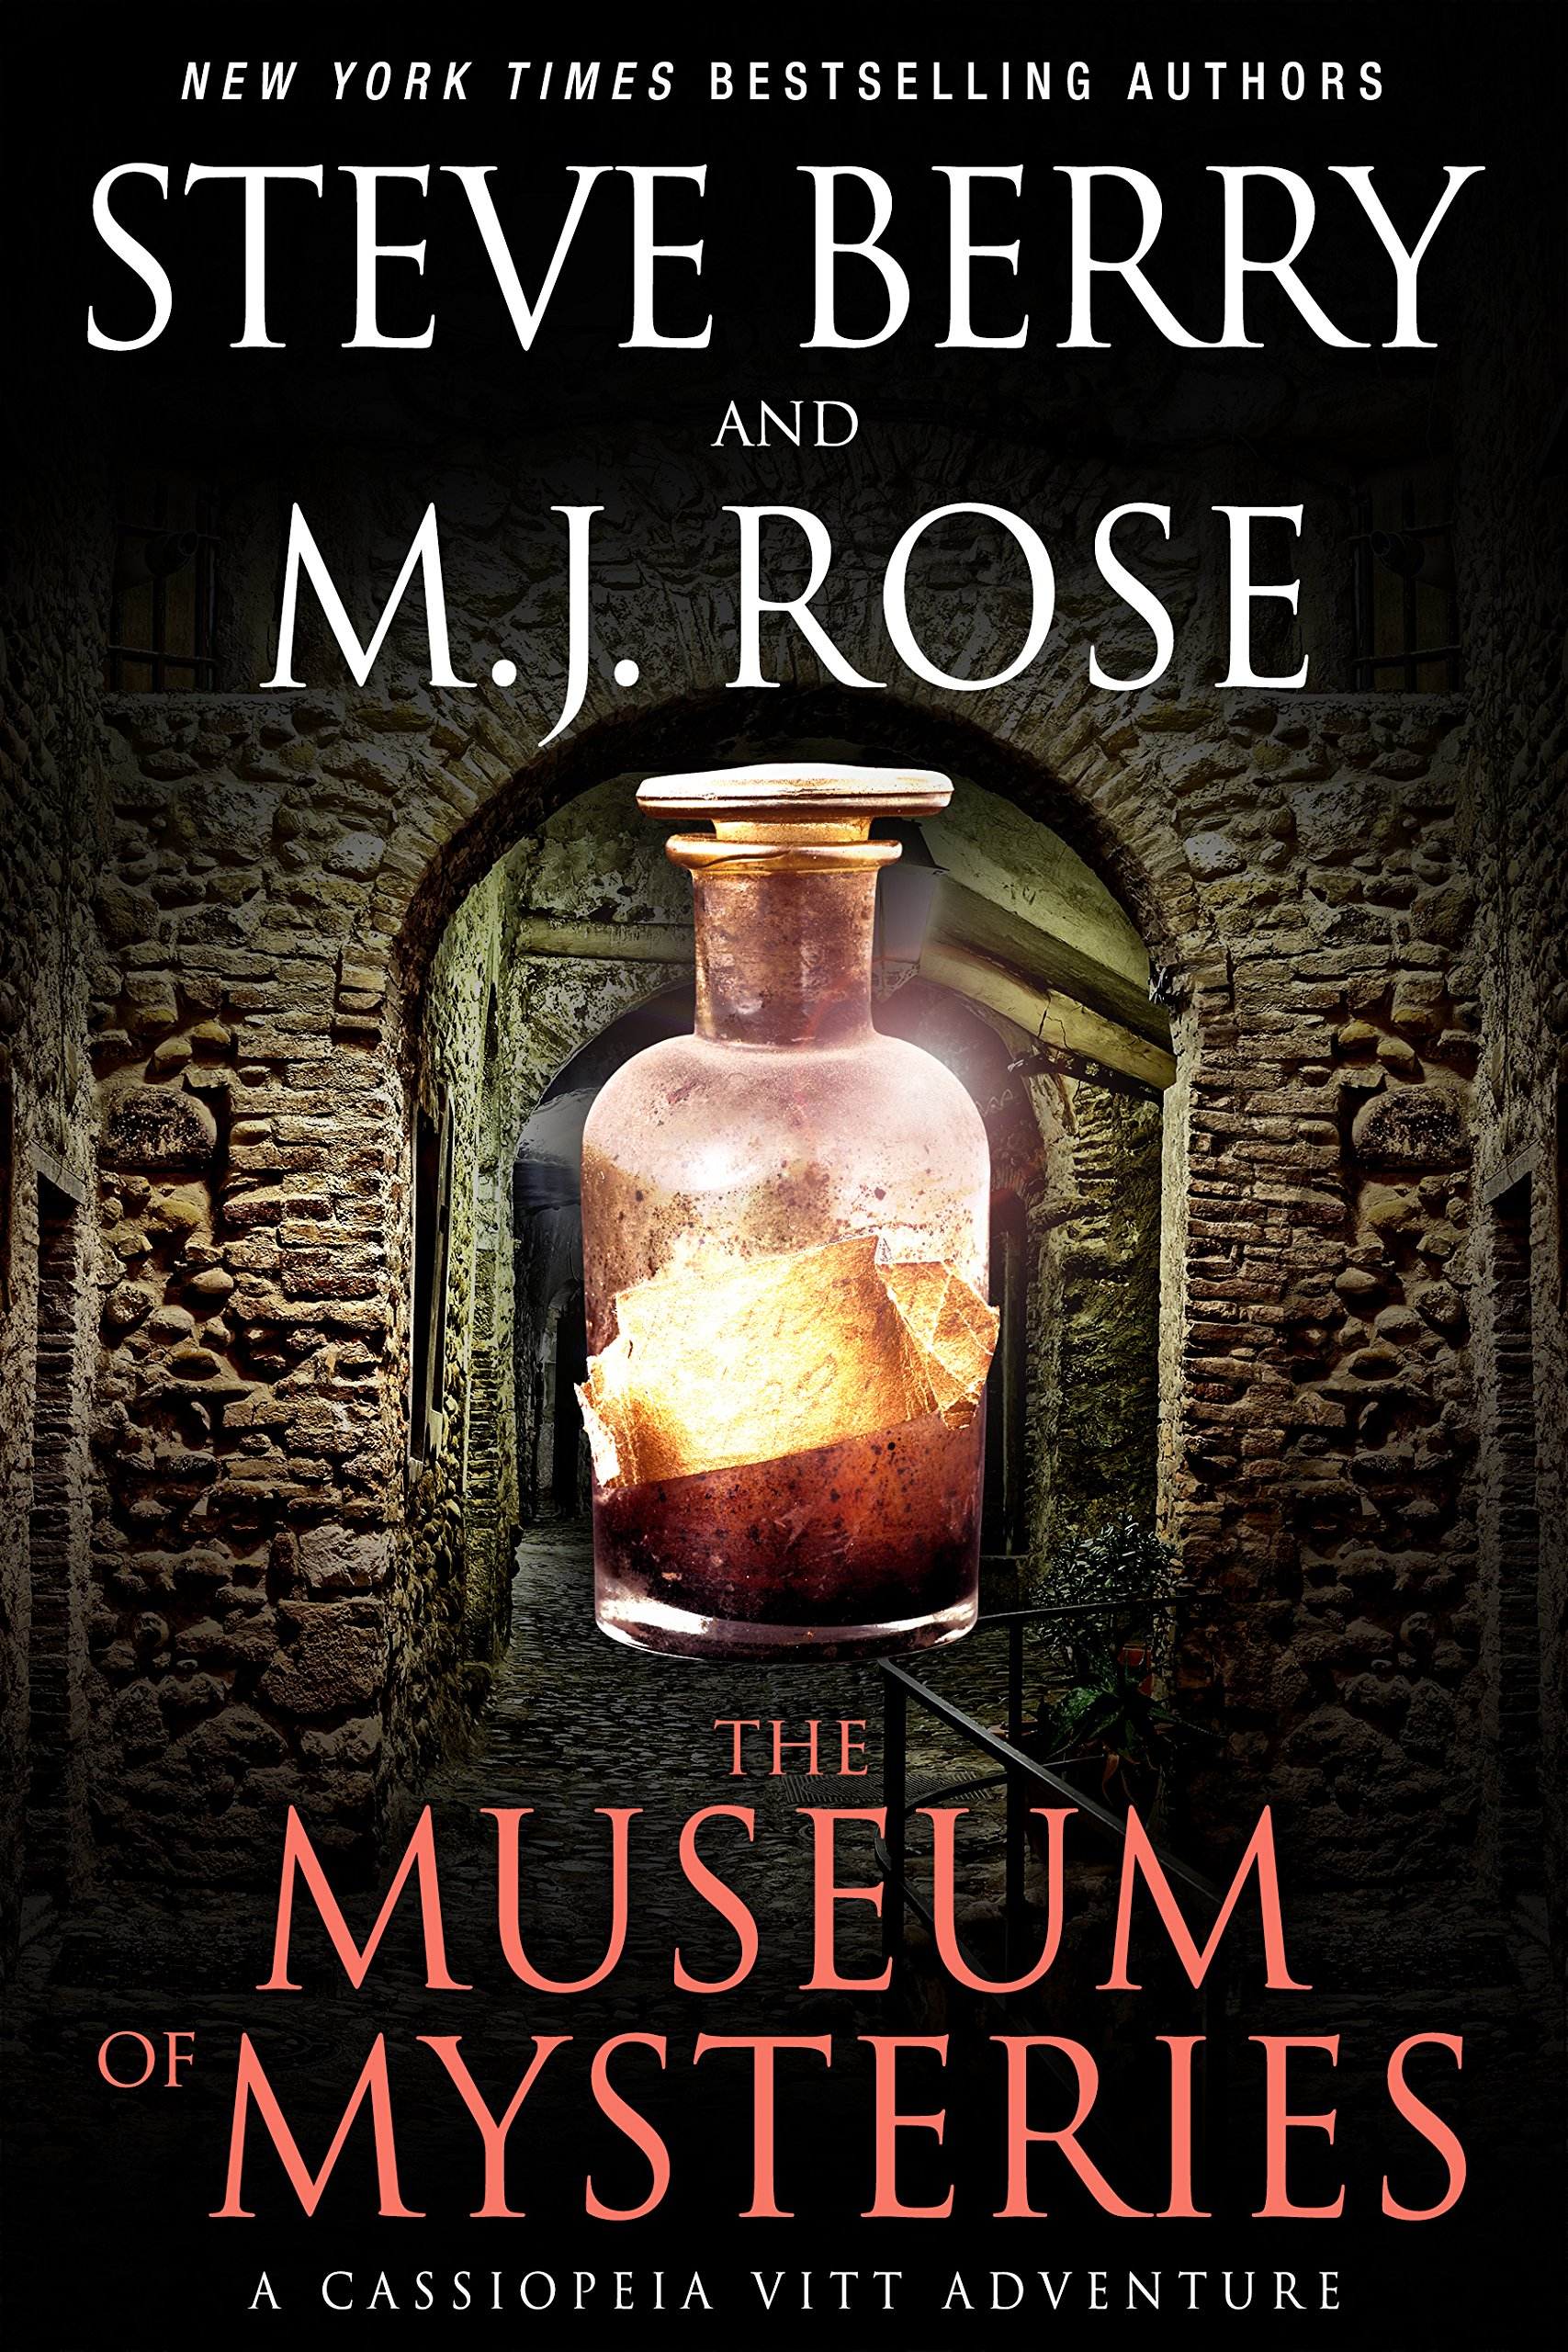 The Museum of Mysteries: A Cassiopeia Vitt Novella